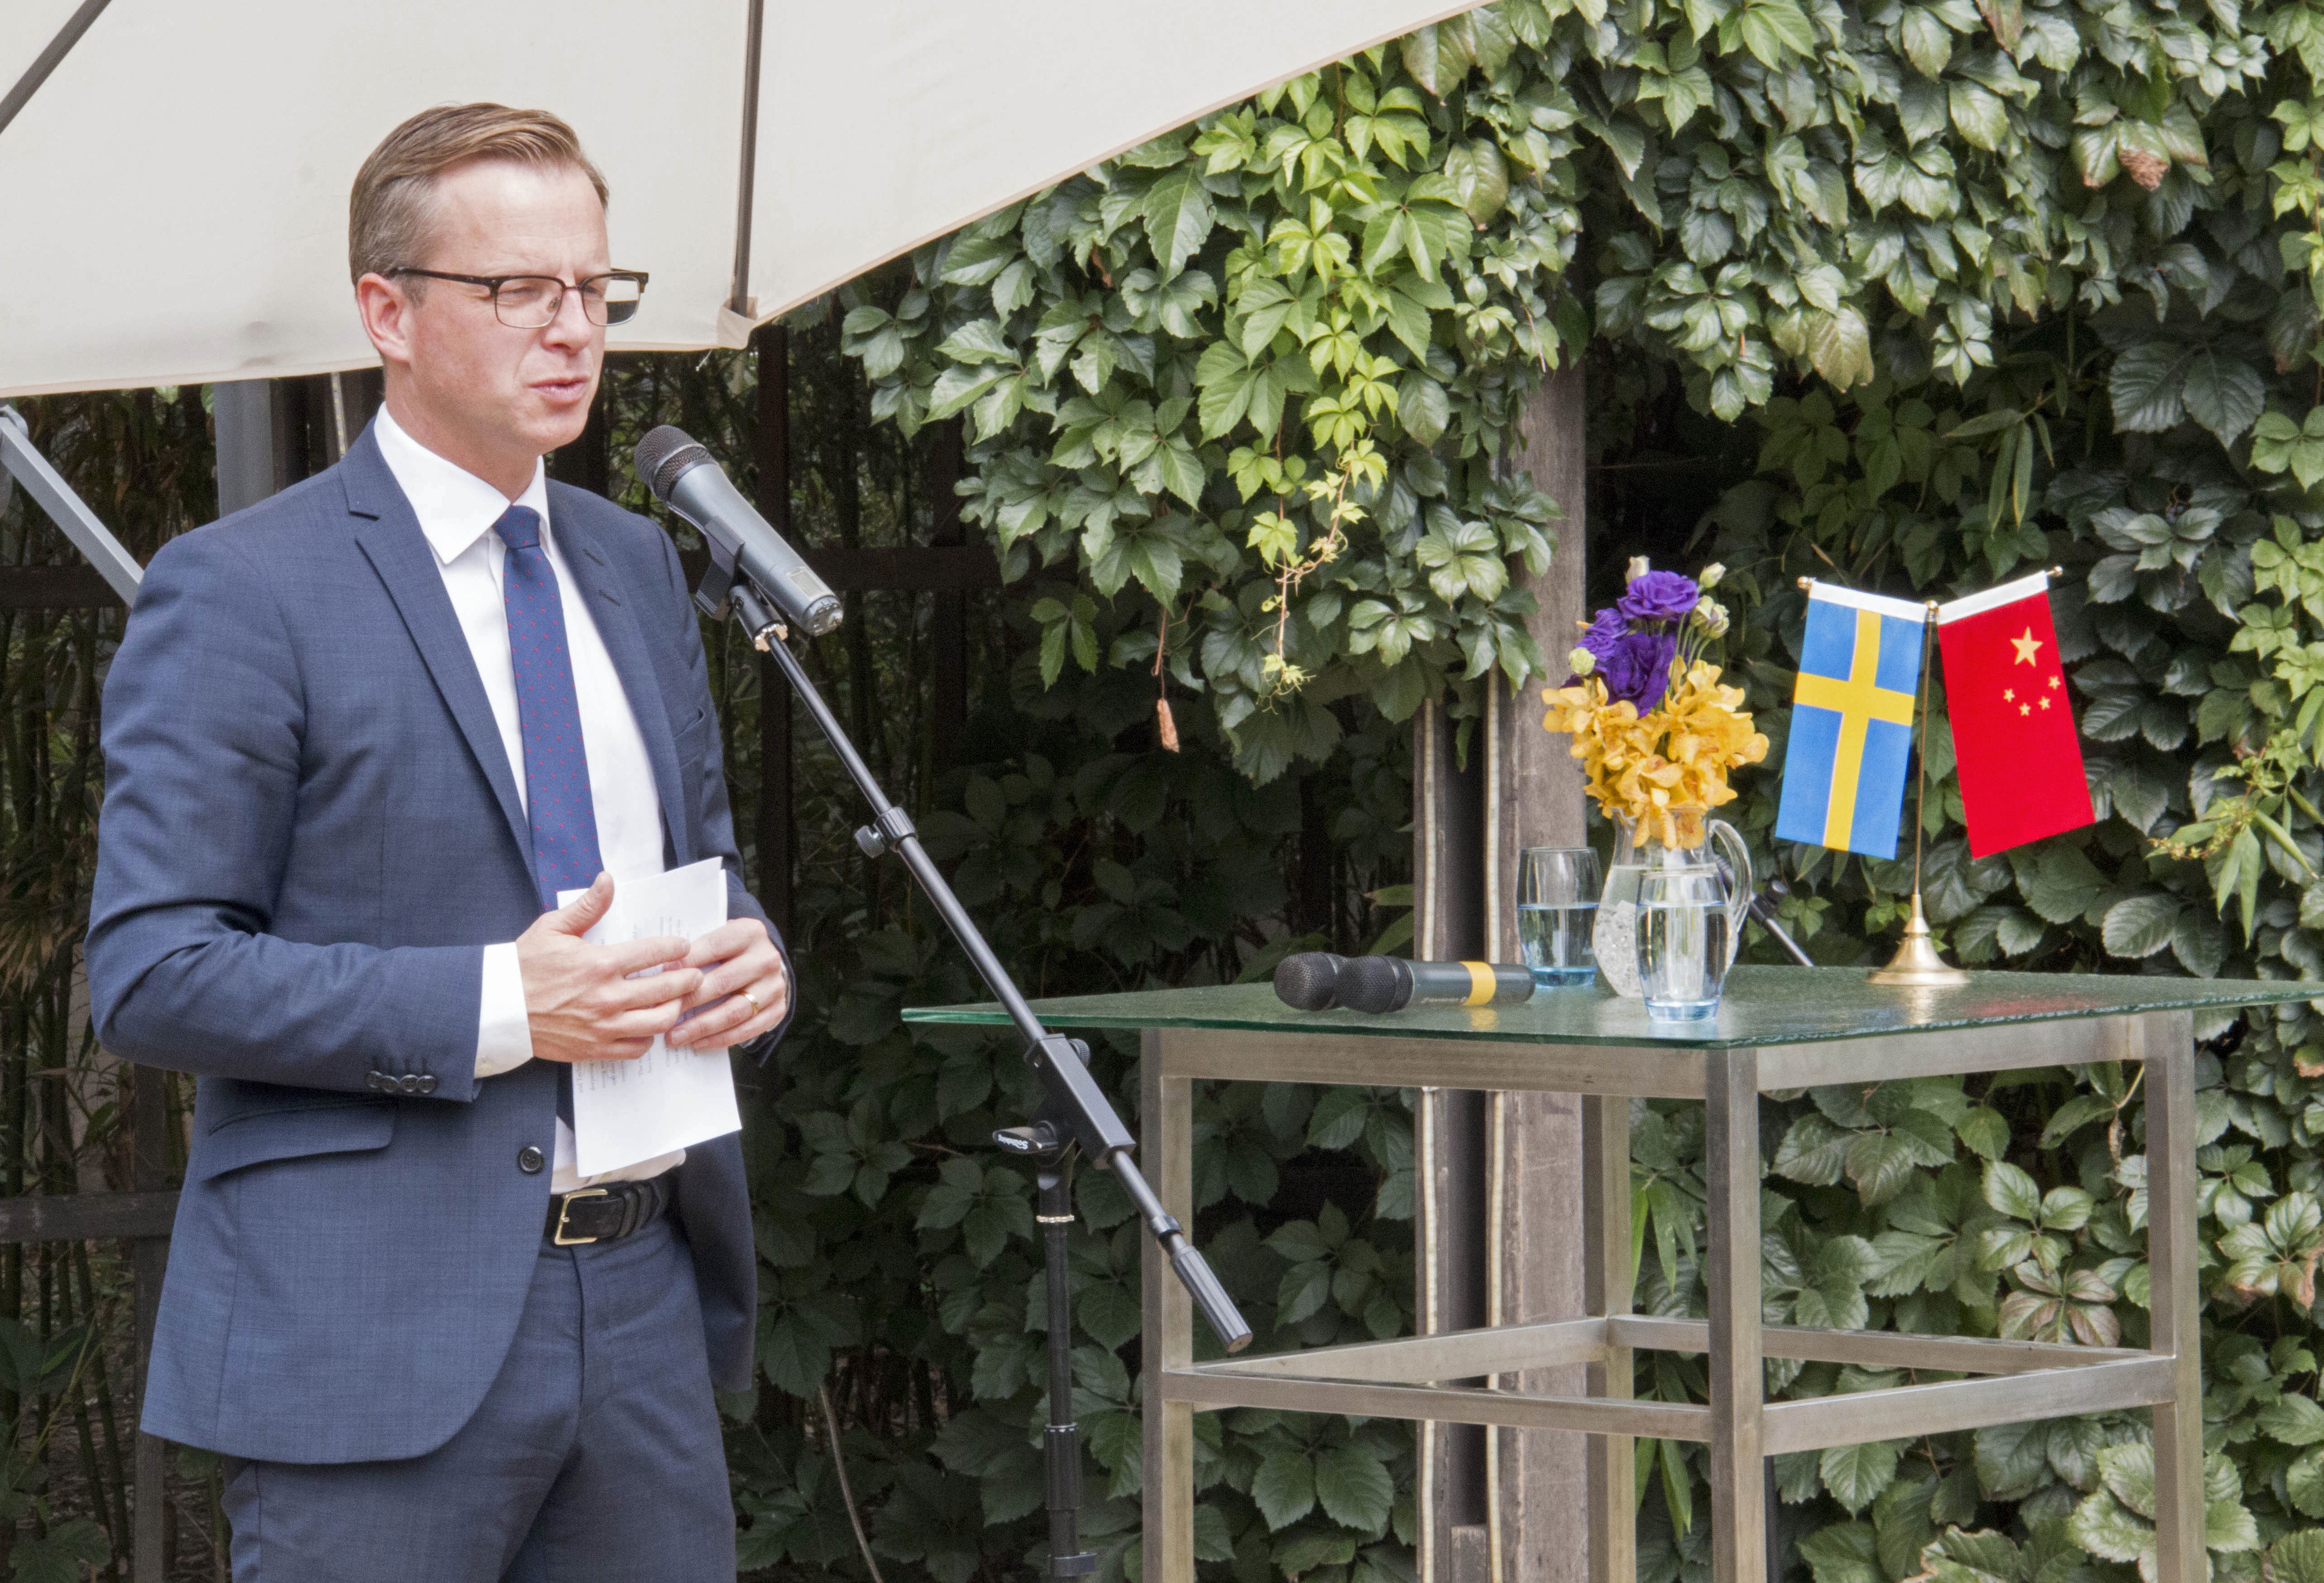 8_Mikael_Damberg_photo_Embassy_of_Sweden